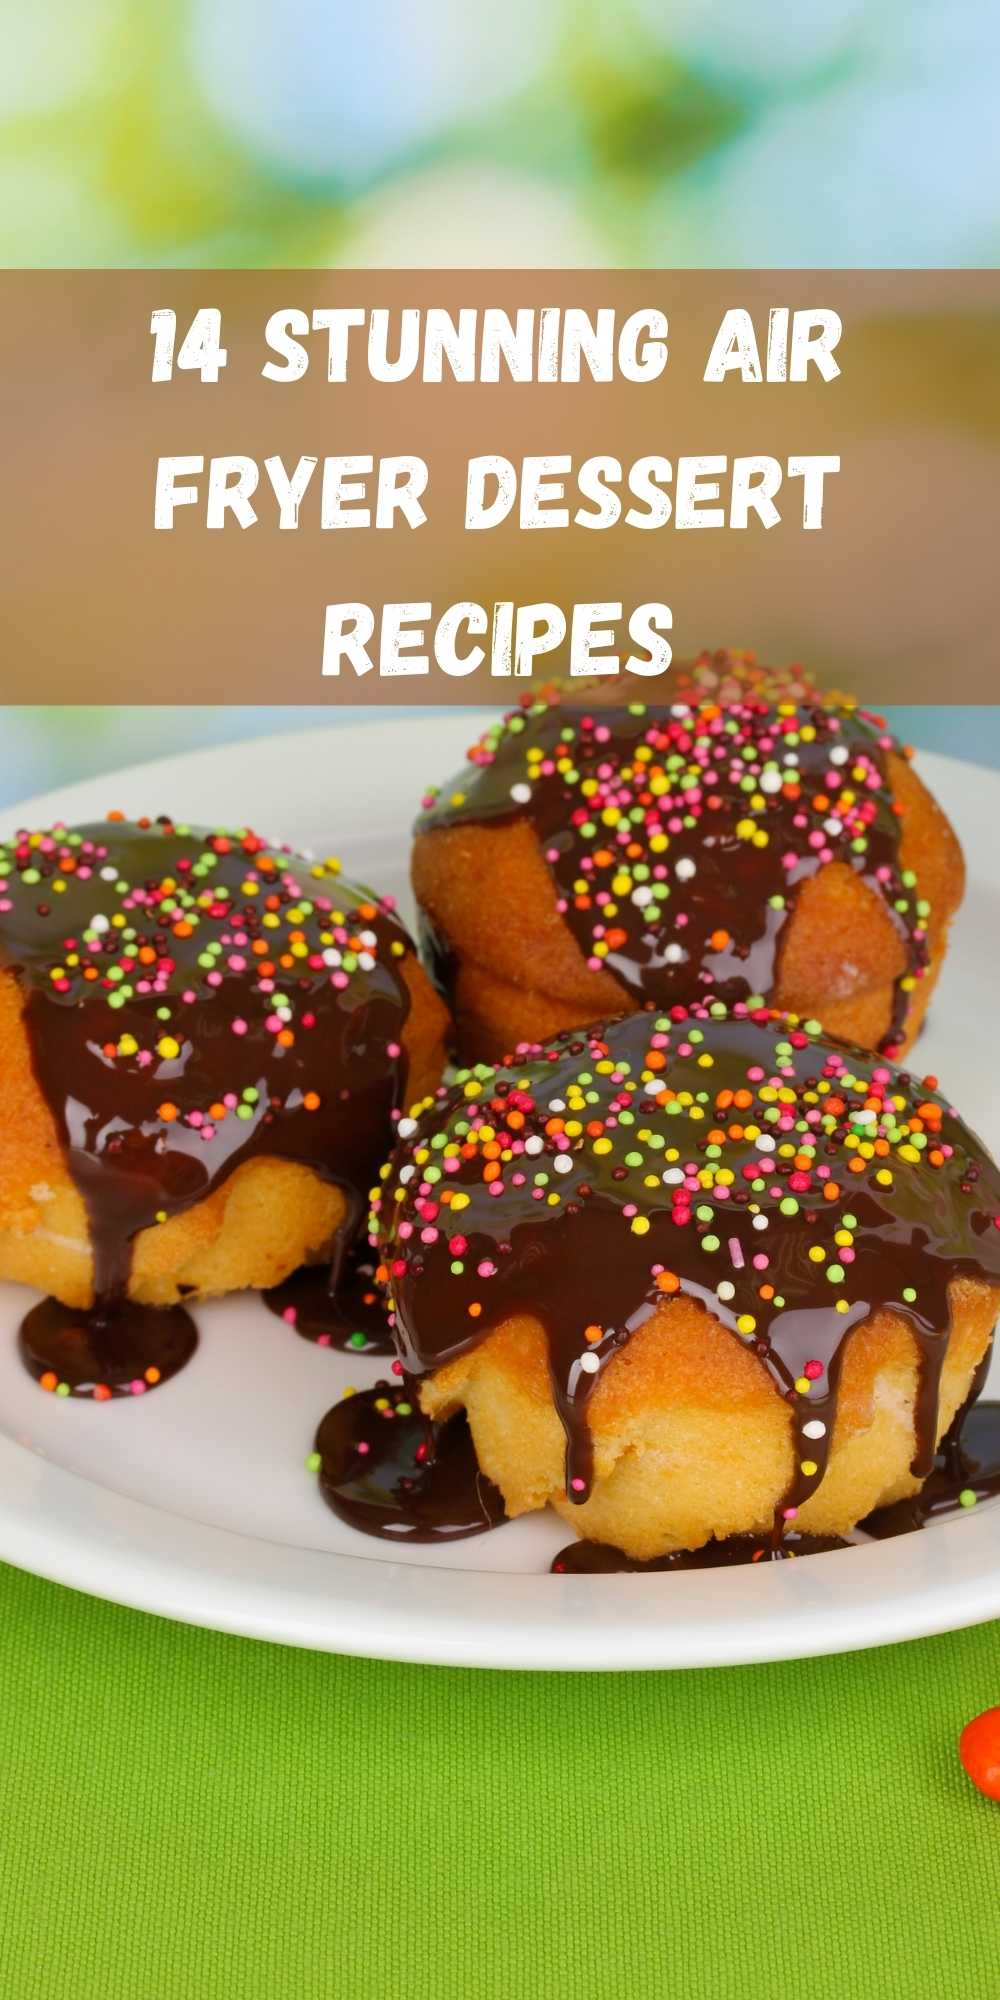 air fryer donuts with chocolate topping and multicoloured sprinkles on top